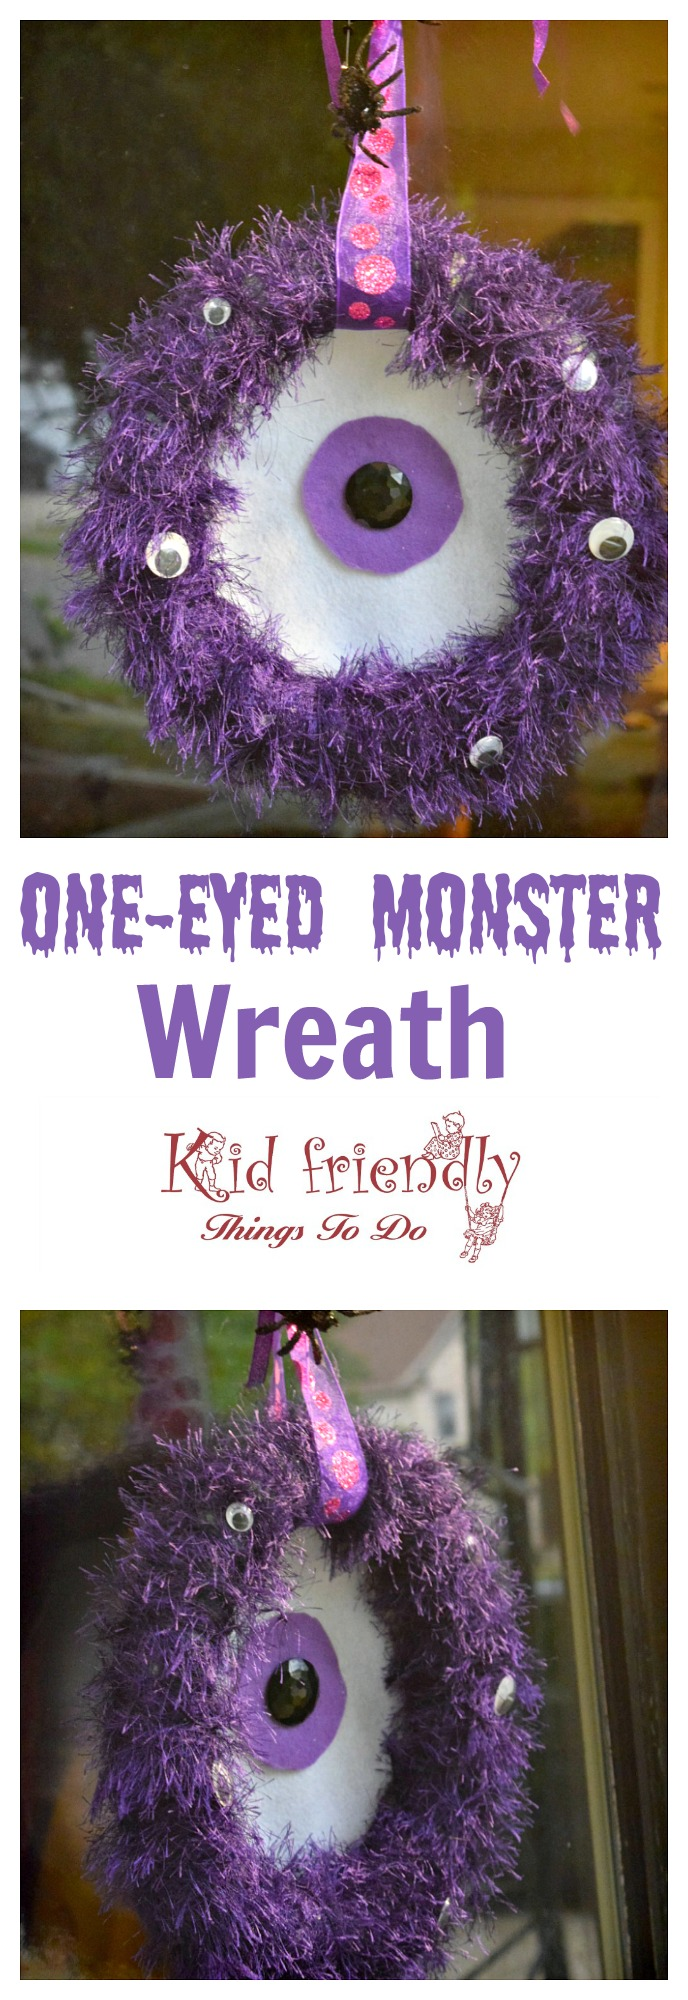 A DIY One-eyed Monster Wreath for Halloween - easy to make and so cute as a Halloween decoration - www.kidfriendlythingstodo.com